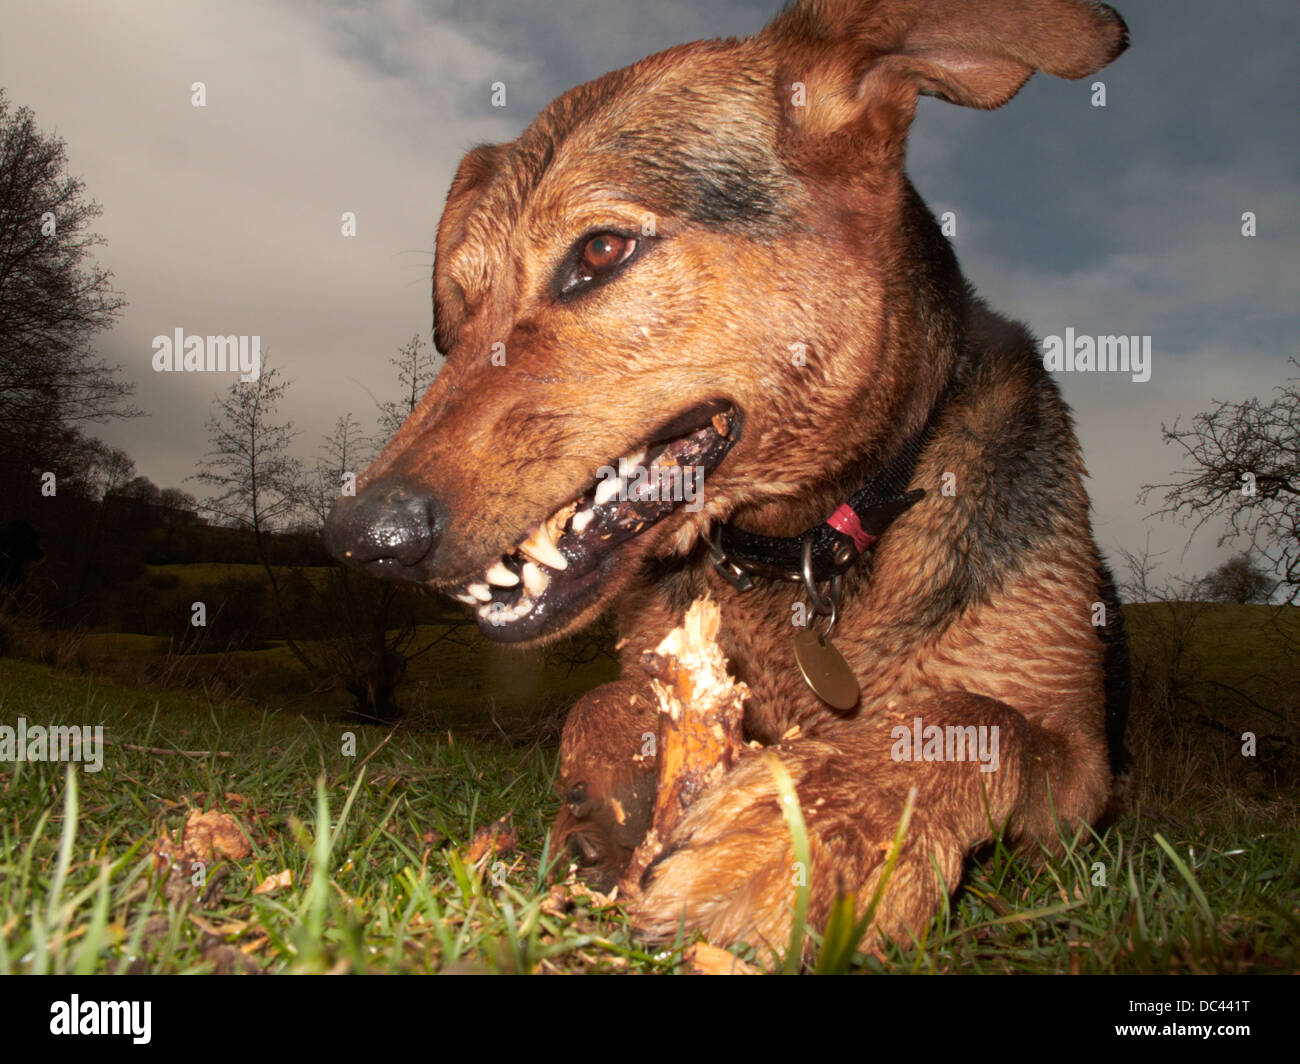 Close up portrait of a dog chewing a stick - Stock Image